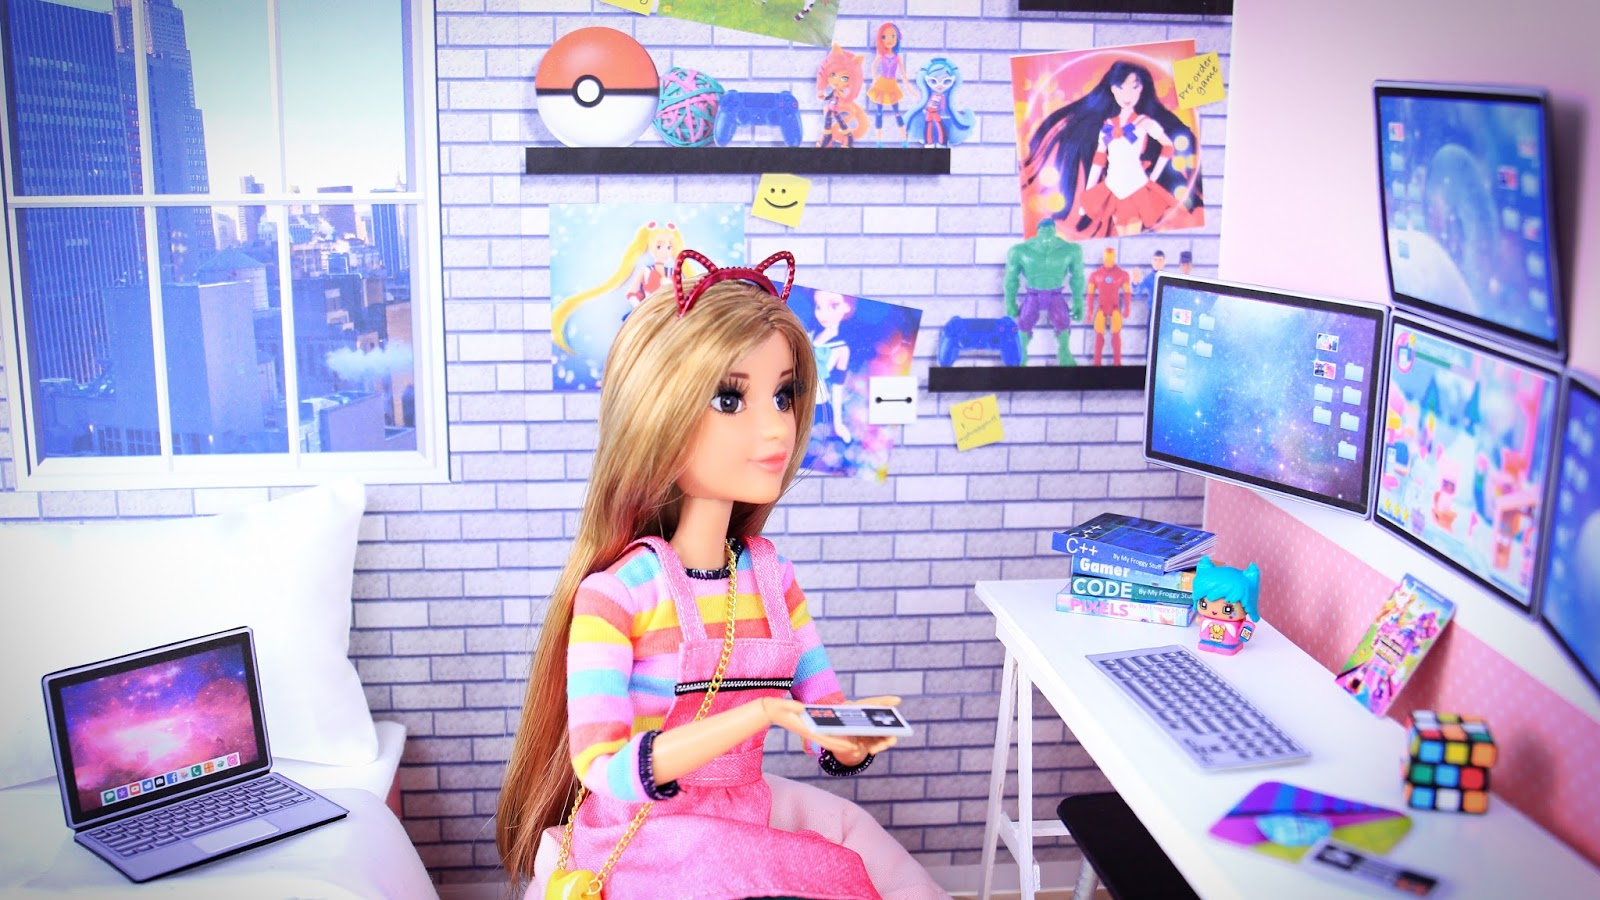 My froggy stuff how to make a doll video gamer room plus free how to make a doll video gamer room plus free printables ccuart Choice Image